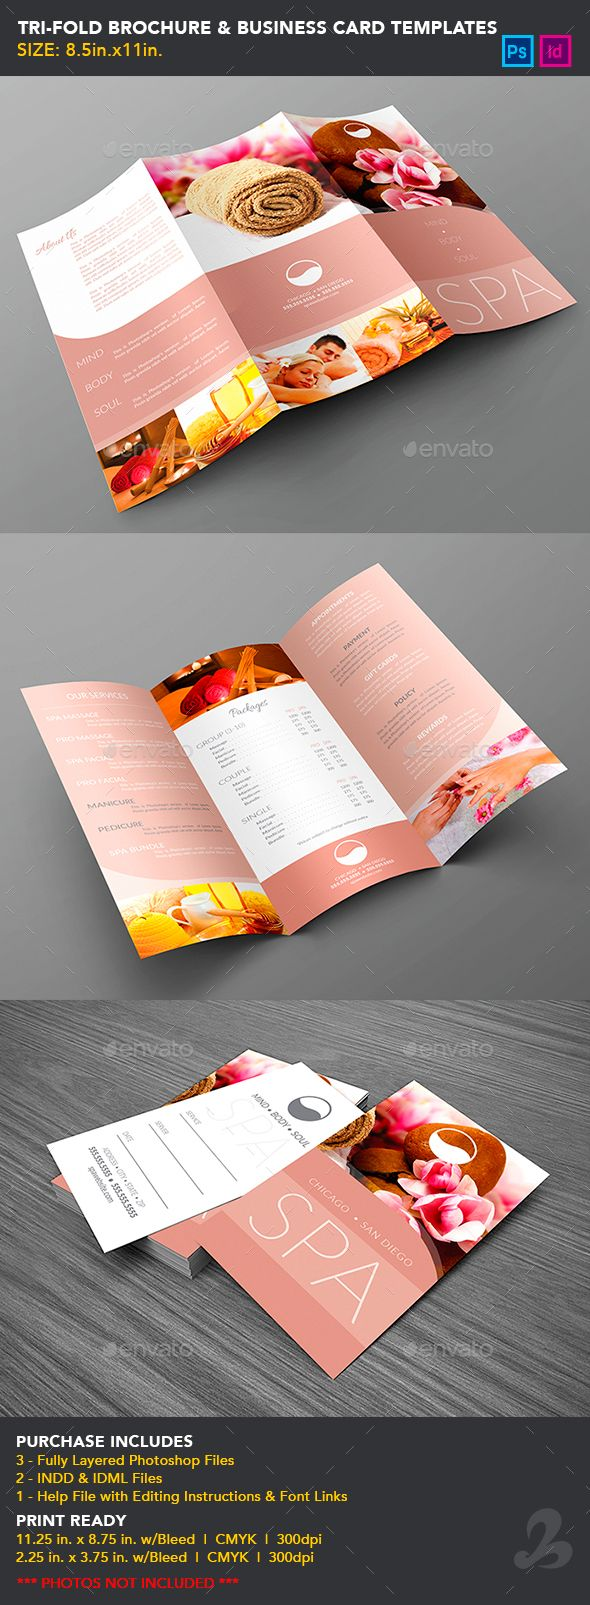 Best Spa Tri-Fold Brochure & Business Card Templates • Only available here ➝ http://graphicriver.net/item/trifold-brochure-business-card-templates-spa/13038932?ref=pxcr